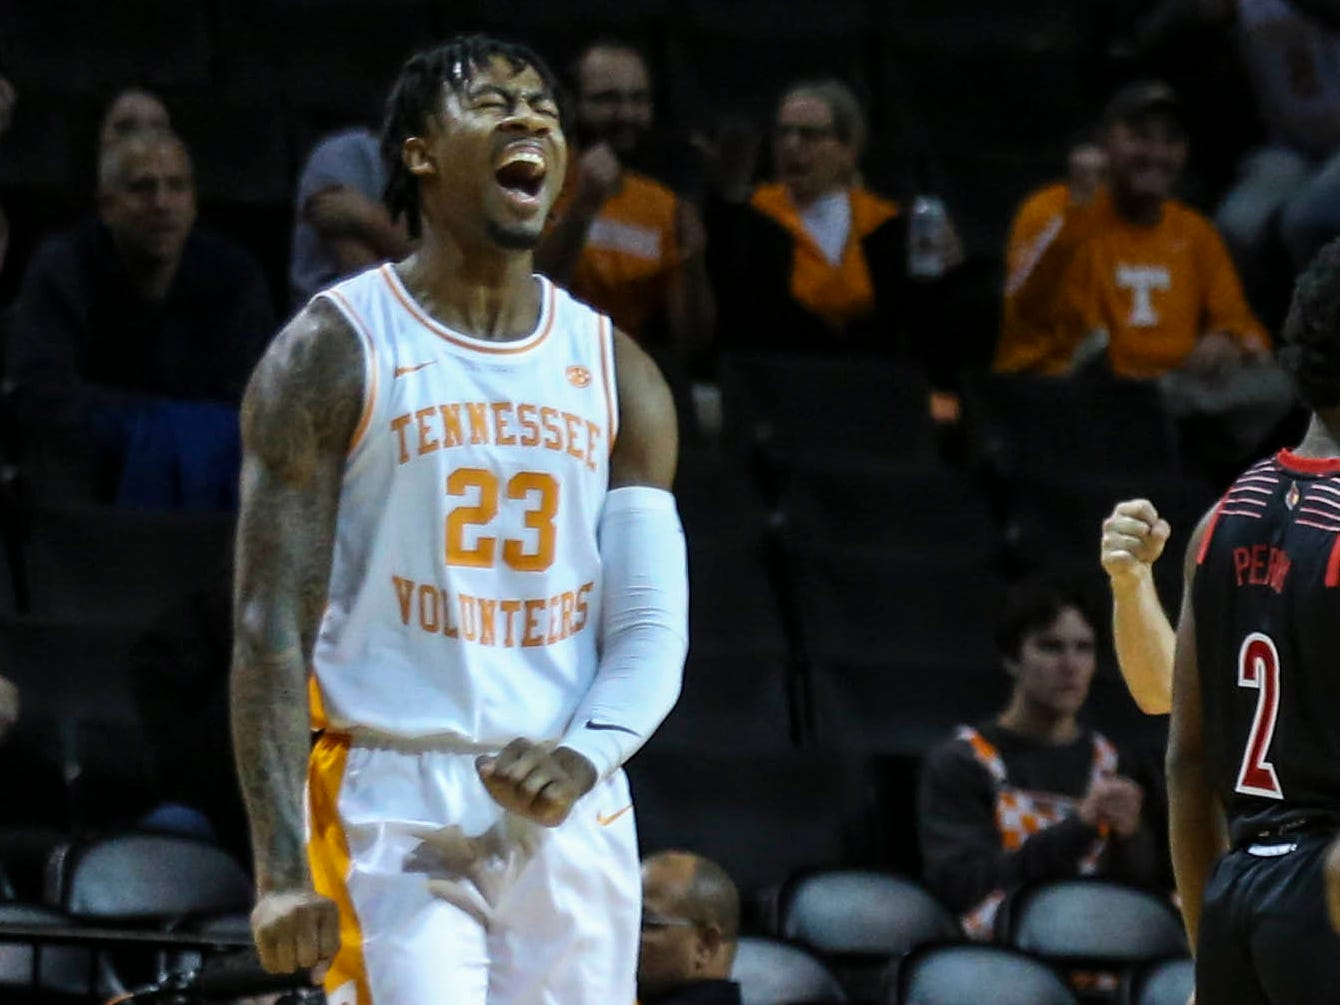 Nov 21, 2018; Brooklyn, NY, USA; Tennessee Volunteers guard Jordan Bowden (23) reacts after a call in the first half against the Louisville Cardinals during the NIT Tip Off at Barclays Center. Mandatory Credit: Wendell Cruz-USA TODAY Sports